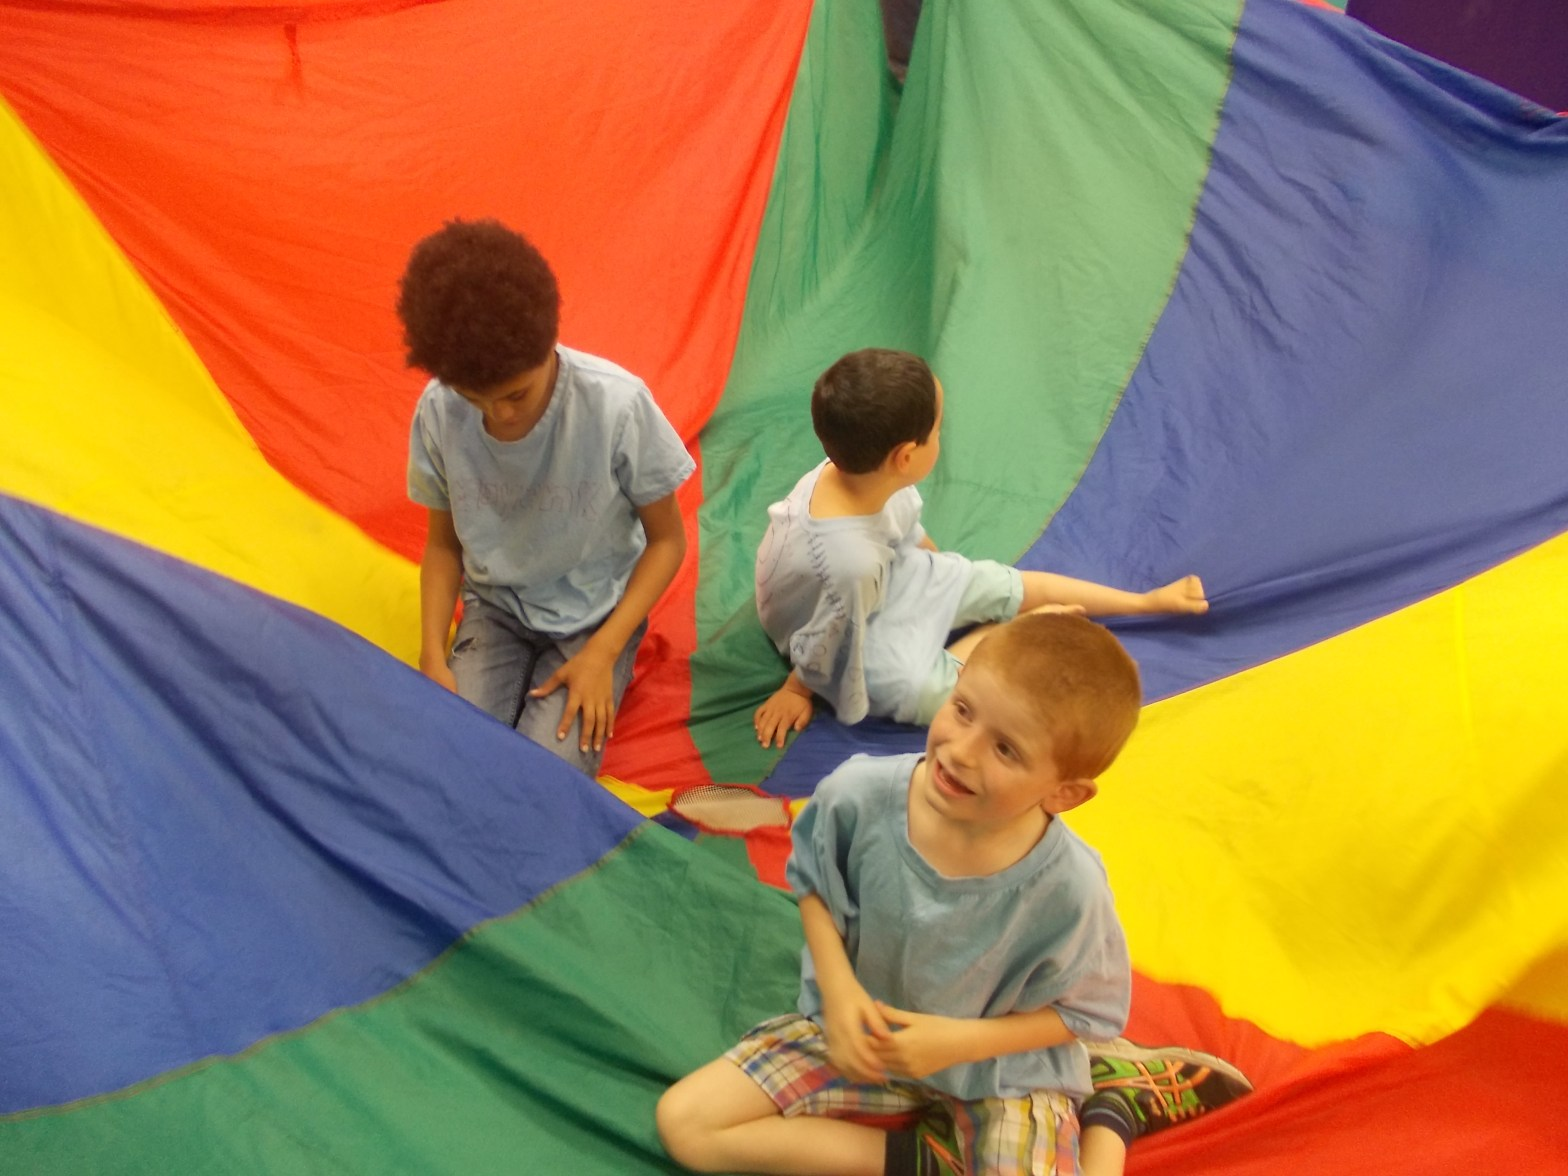 Playing with parachute